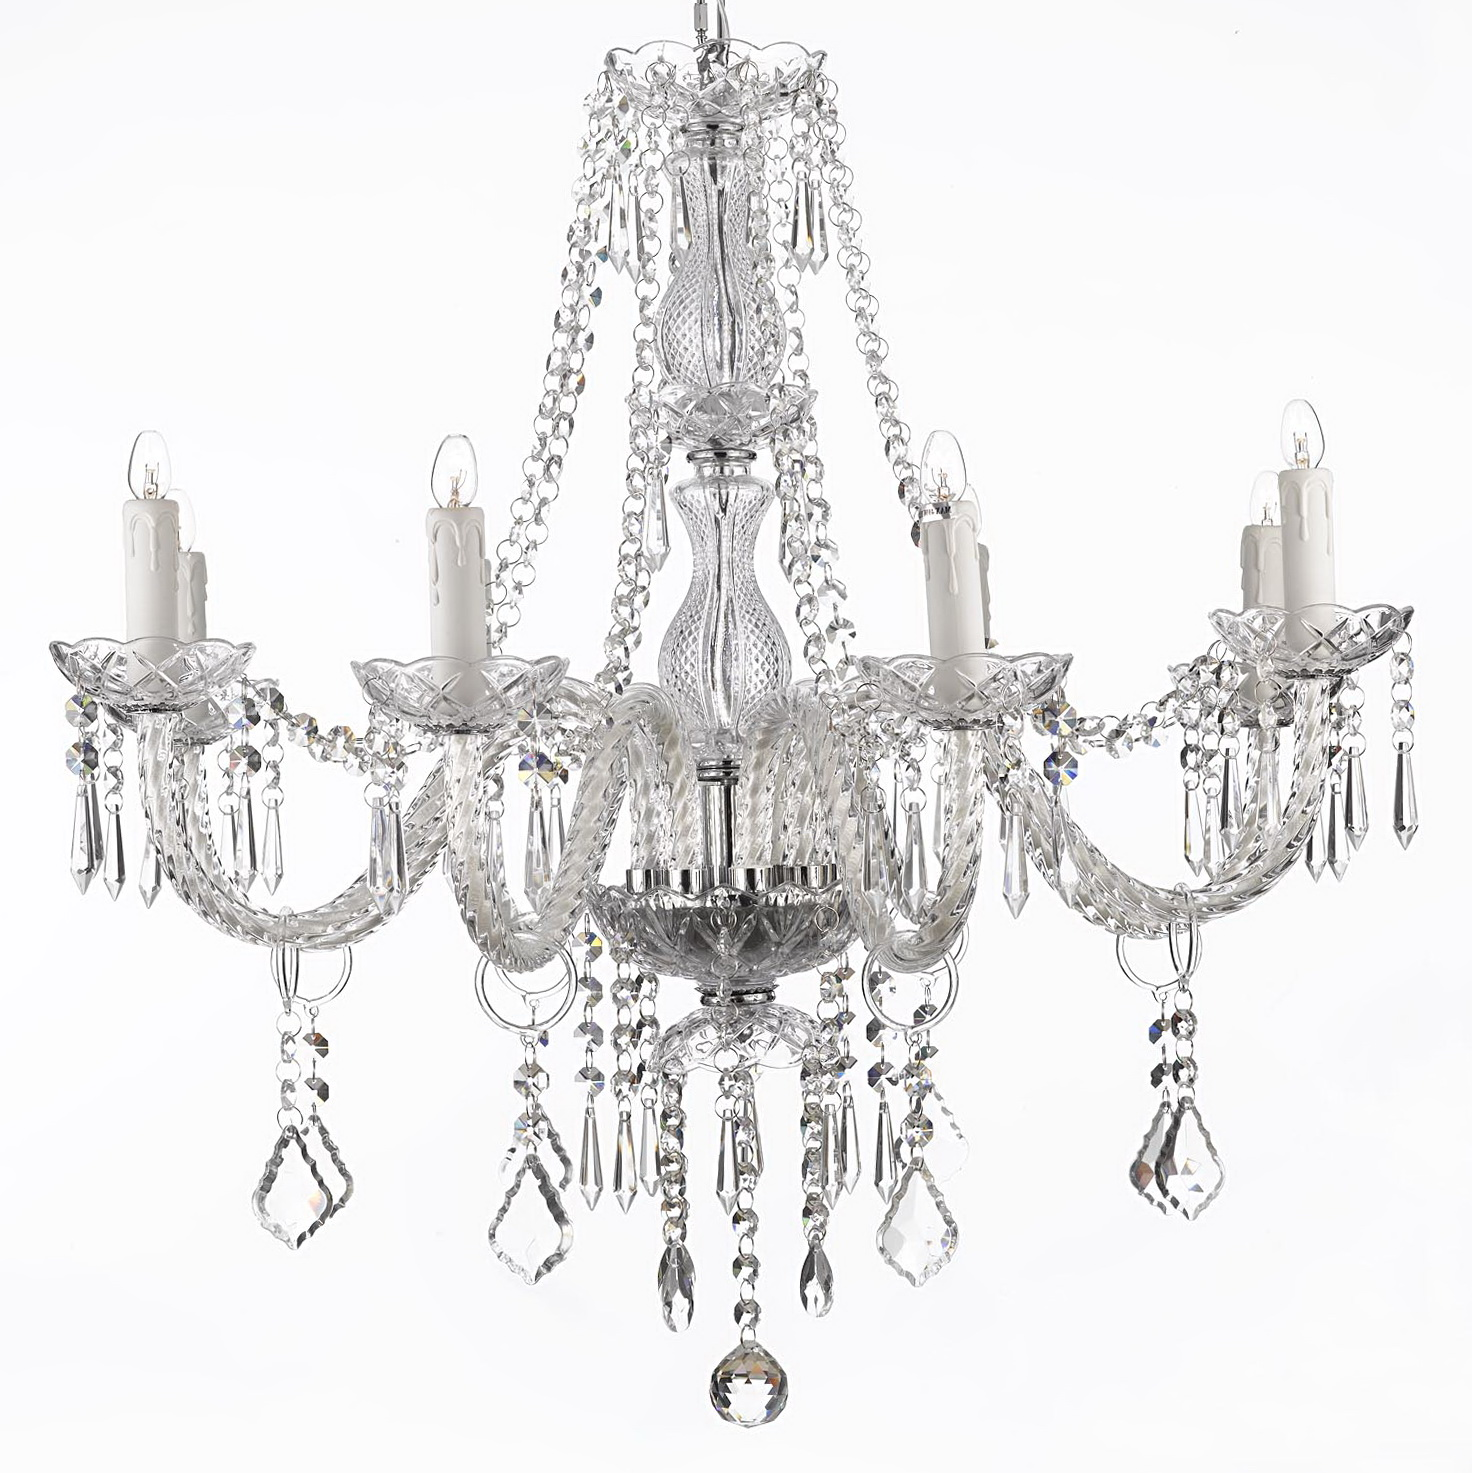 Chandelier Crystal Parts For Sale Home Design Ideas